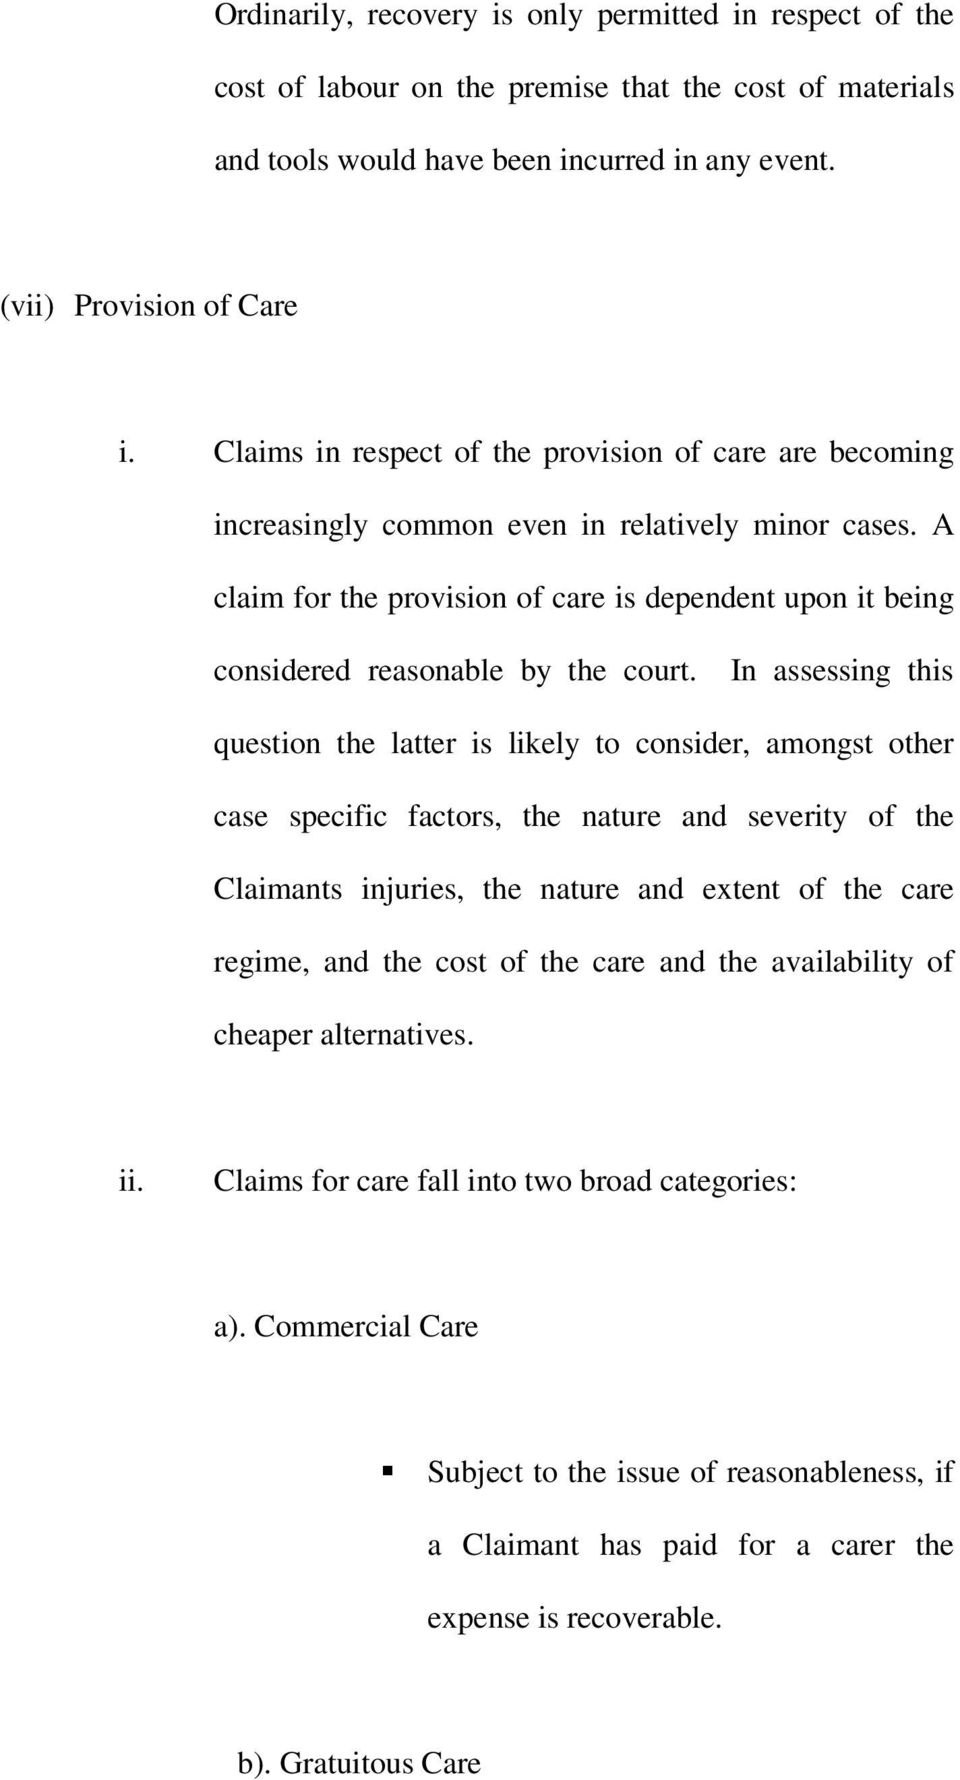 A claim for the provision of care is dependent upon it being considered reasonable by the court.